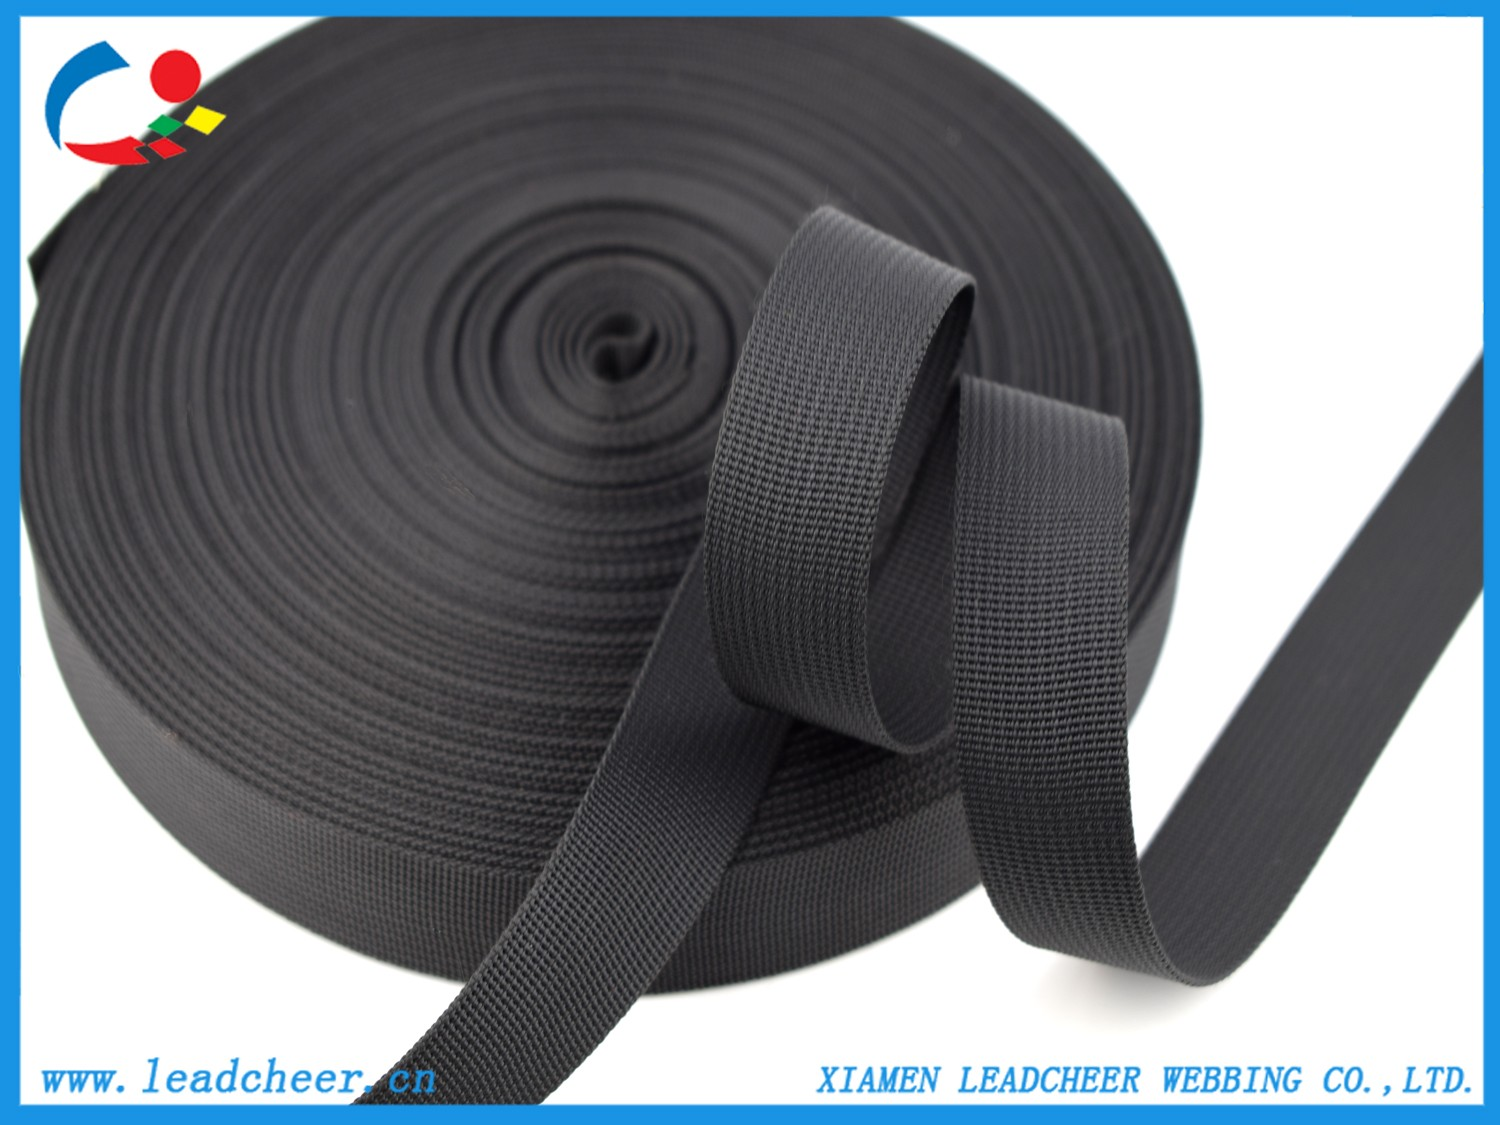 High quality Nylon Bag Strap Quotes,China Nylon Bag Strap Factory,Nylon Bag Strap Purchasing